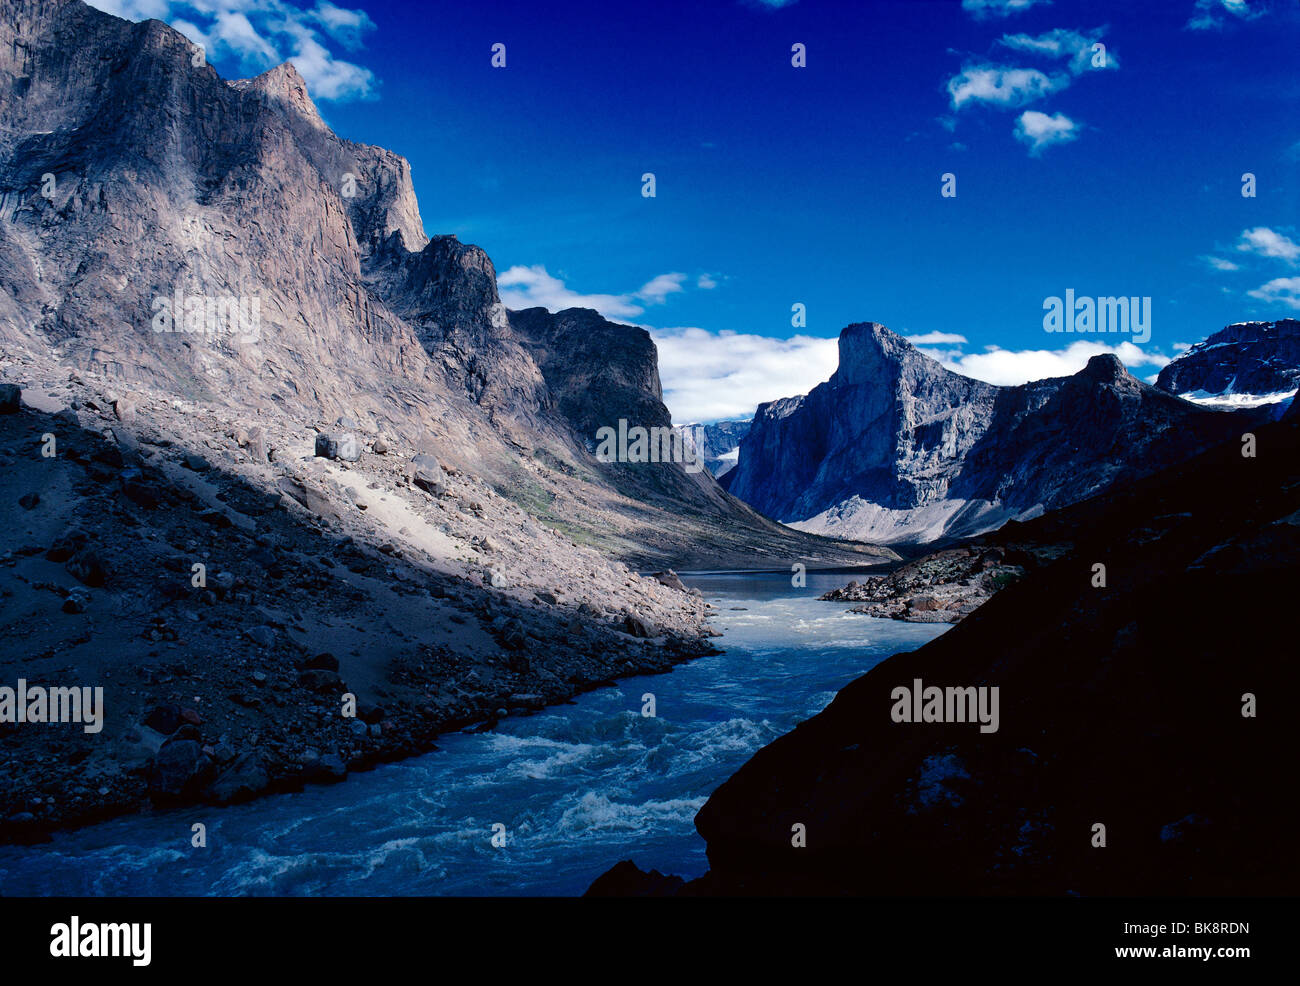 View up Weasel River at Windy Pass Bridge to Mt. Thor, Auyuittuq National Park, Baffin Island, Nunavut, Canada - Stock Image